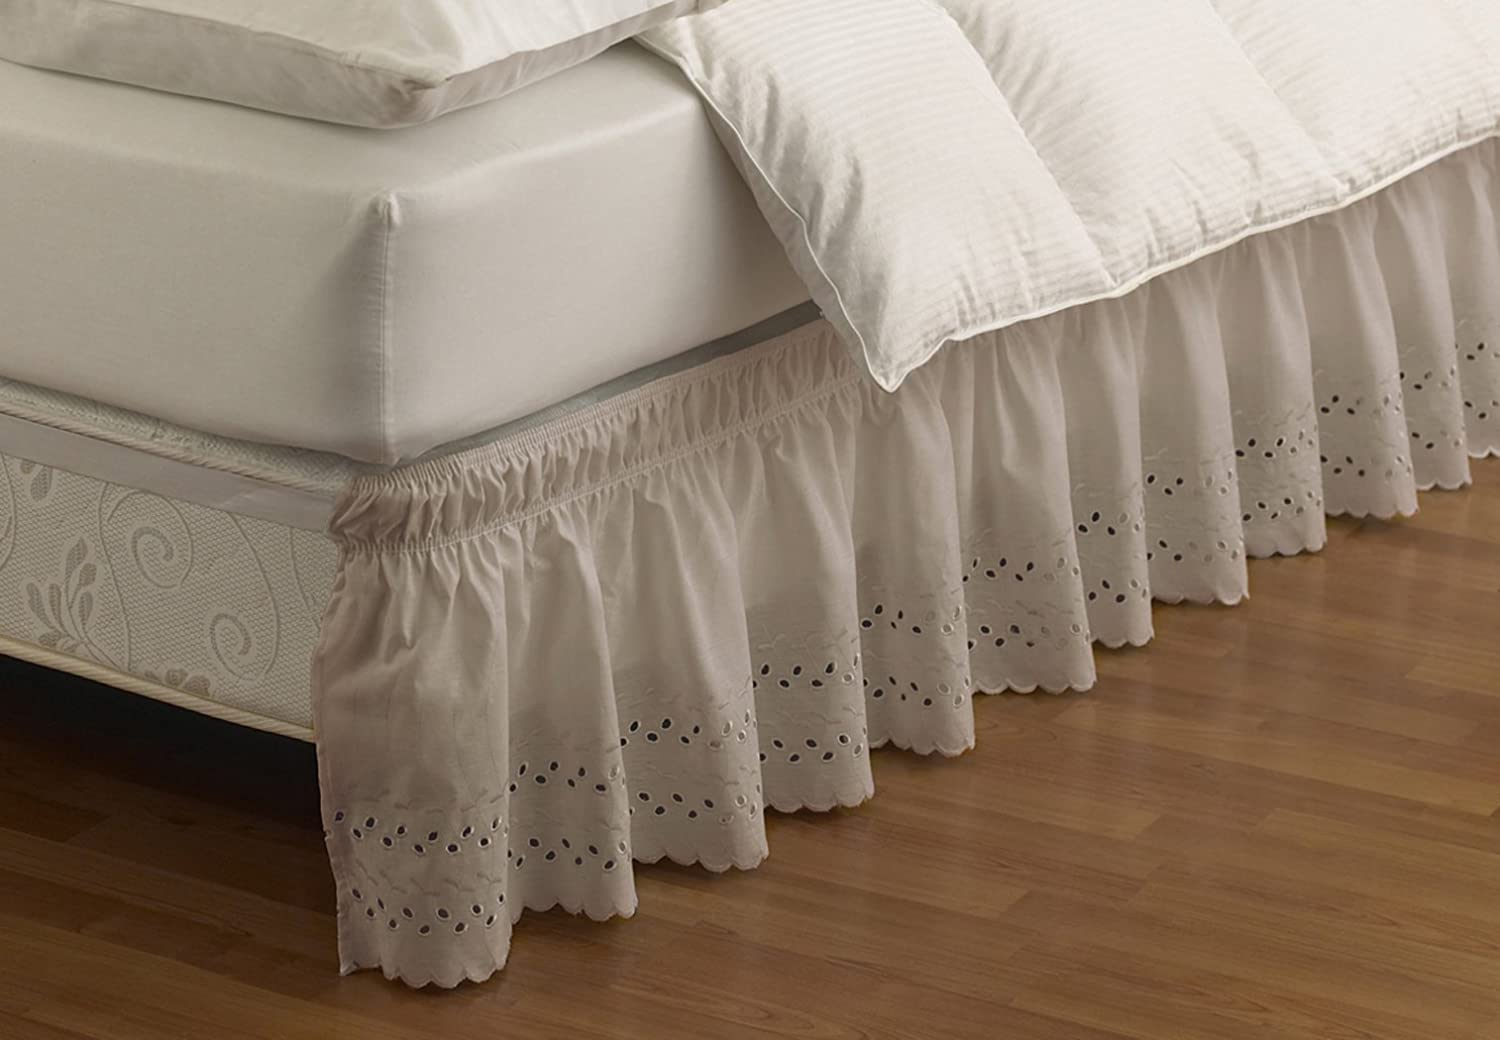 Easy Fit Wrap Around Eyelet Ruffled Bed Skirt, Twin/Full, Camel Ellery Homestyles 11578BEDDTFUCML